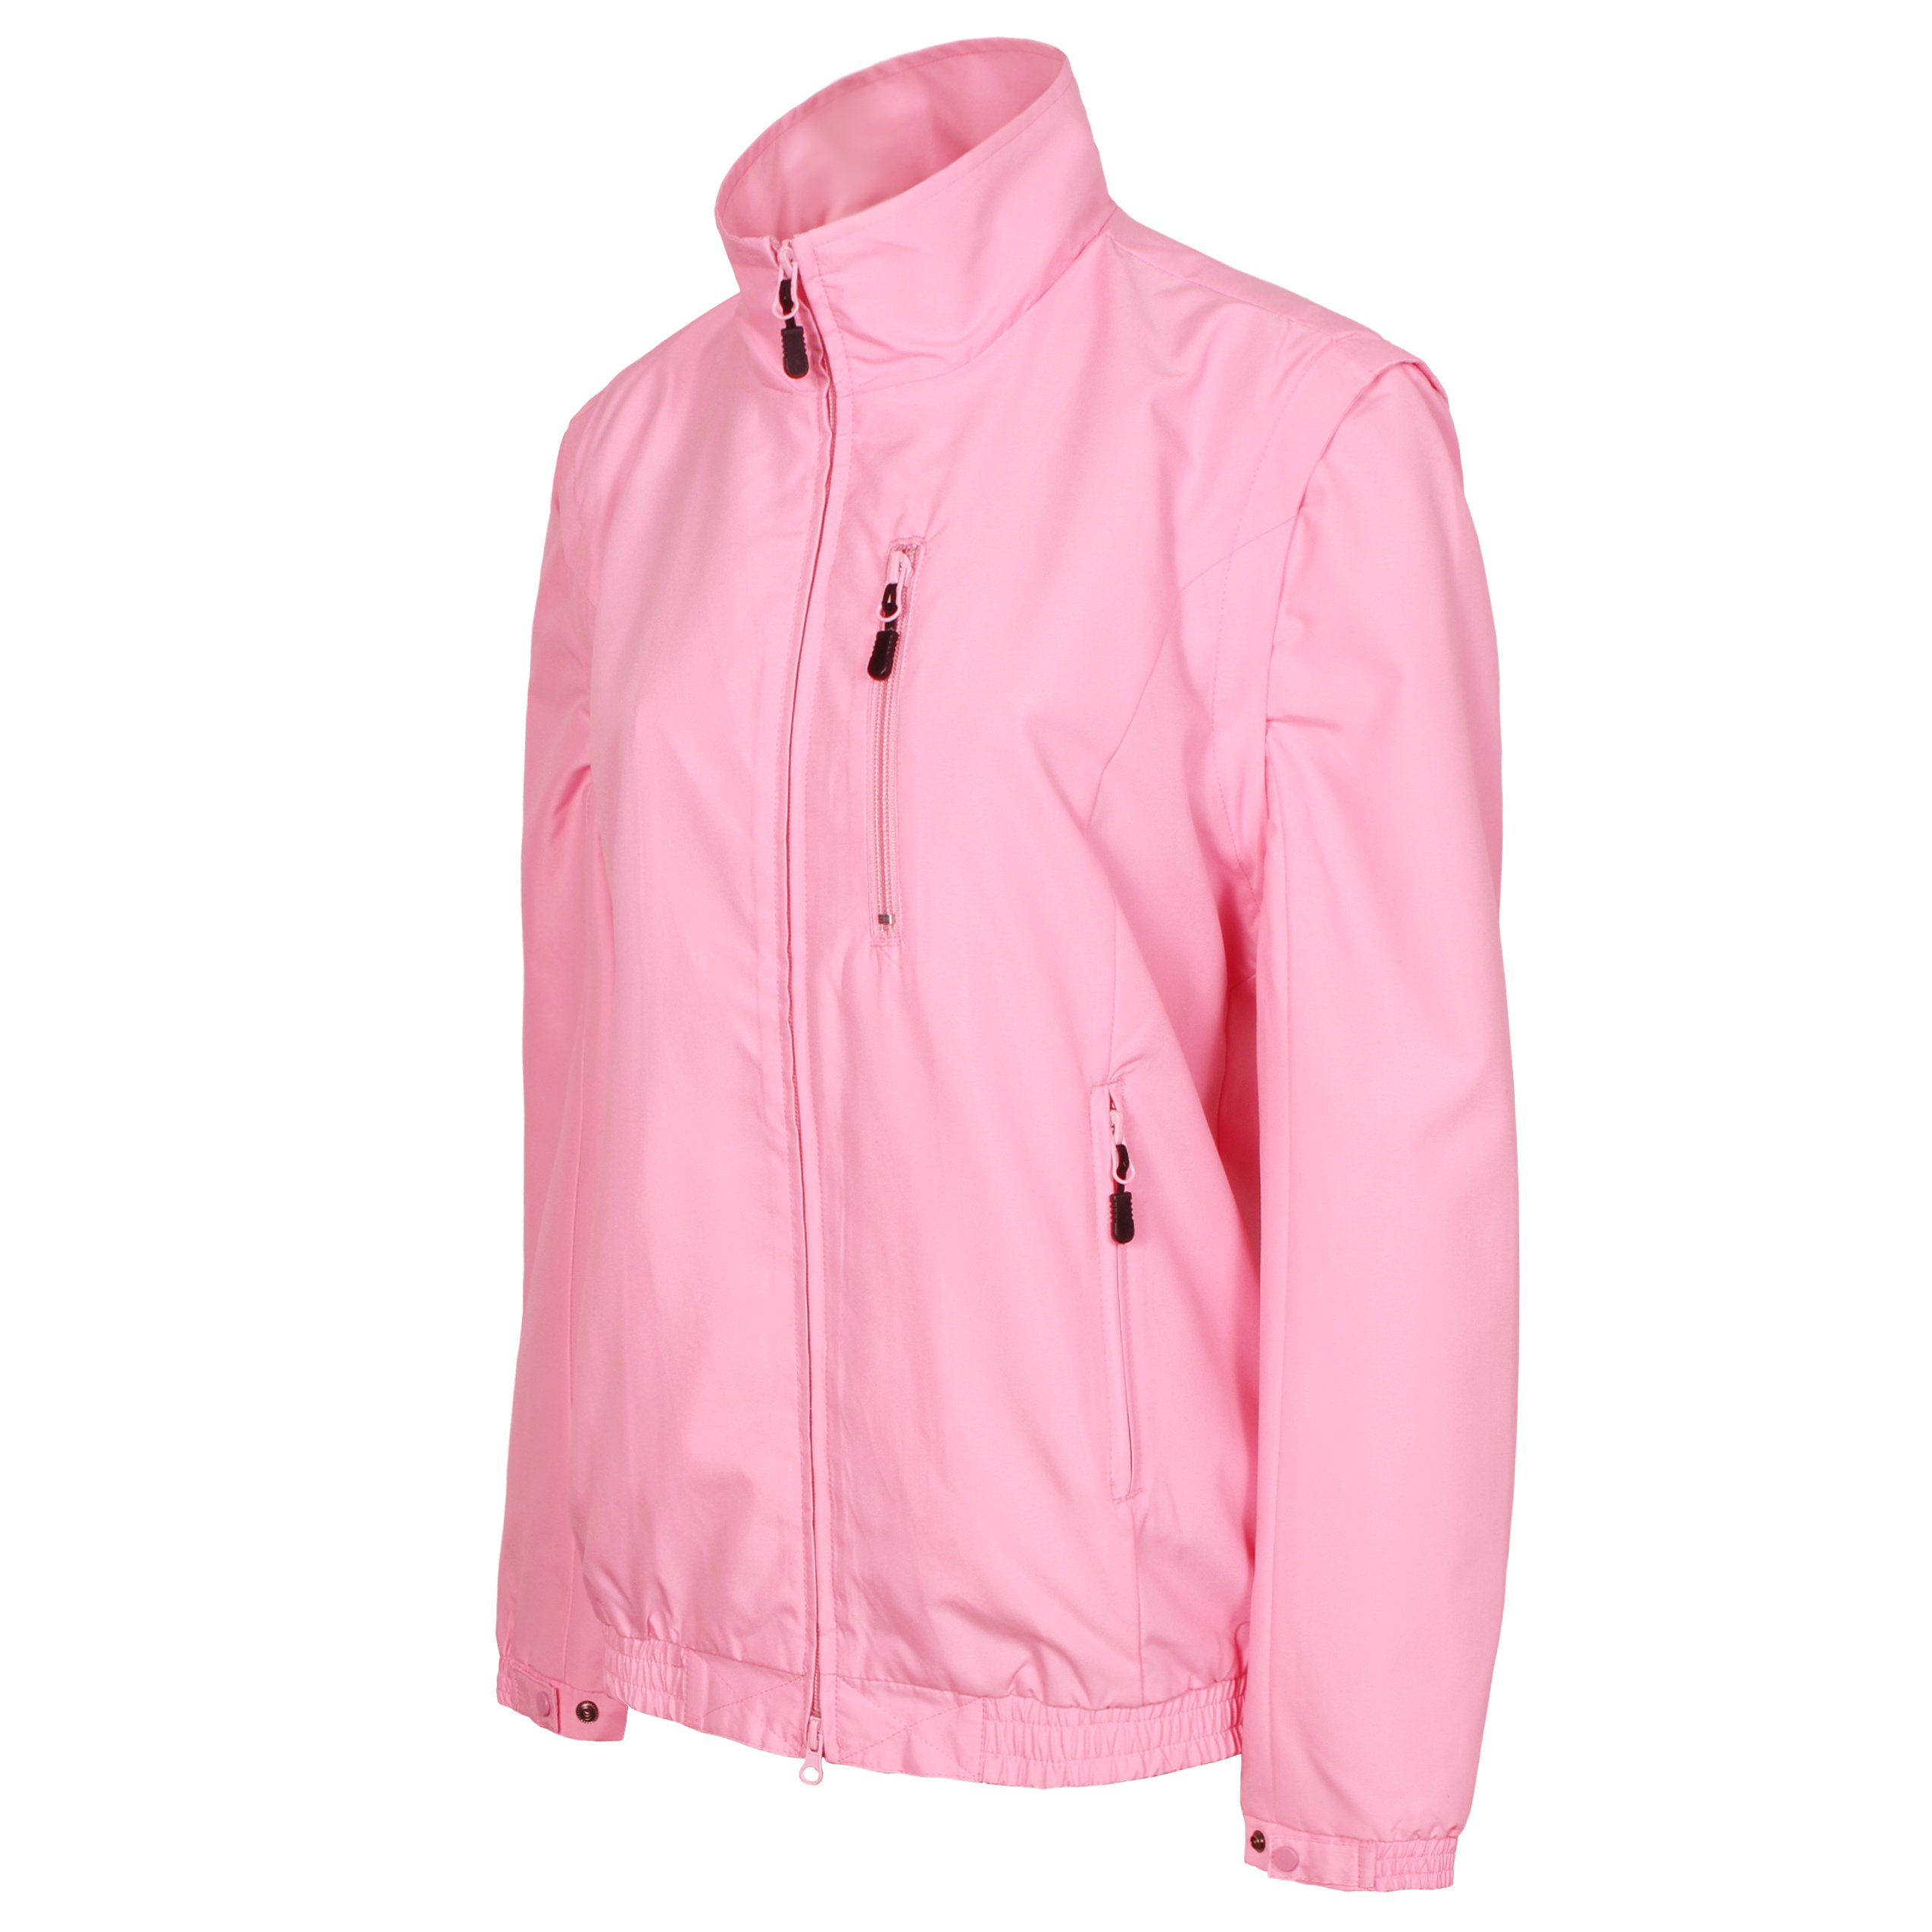 Tres Bien Golf Women's 2 in 1 Convertible Jacket / Vest (Large, Pink) by Tres Bien Golf (Image #3)